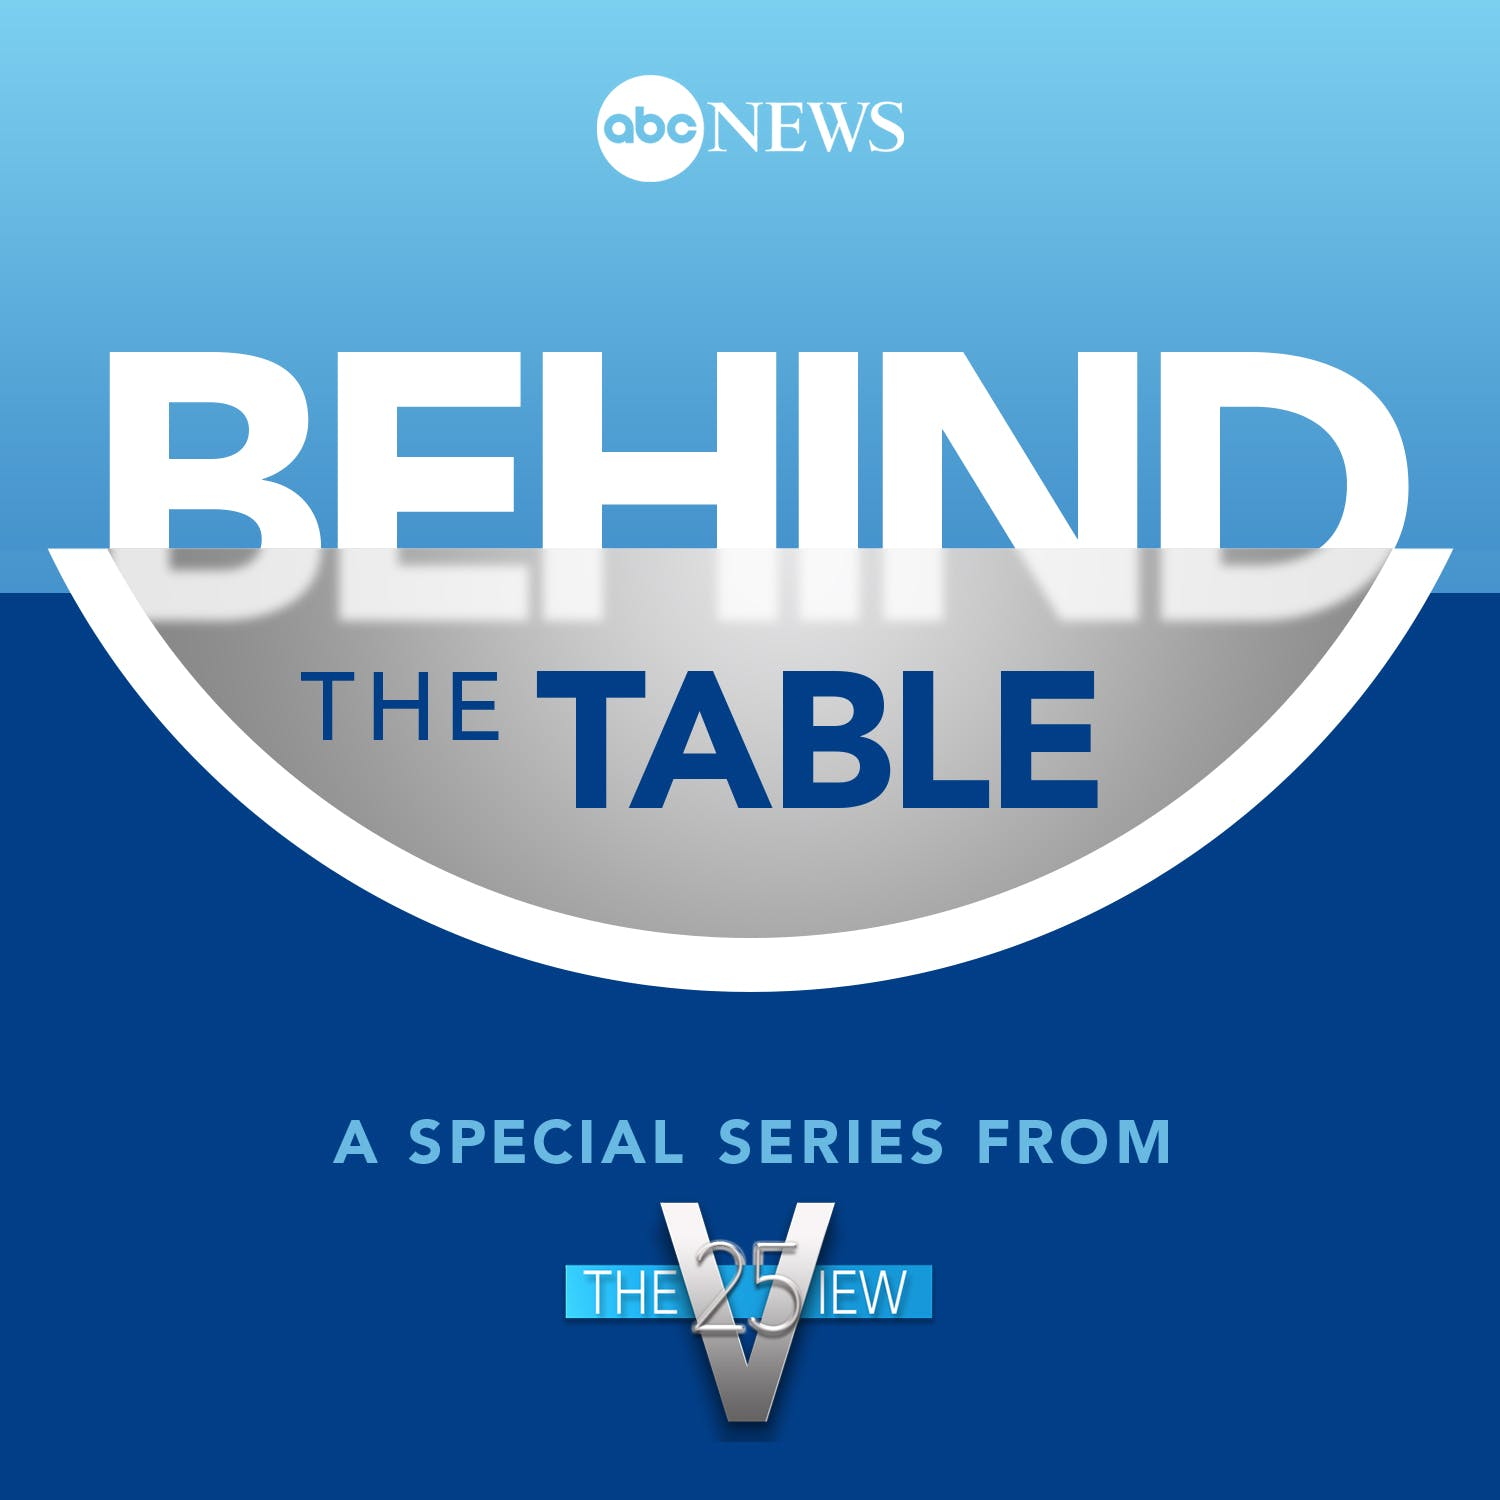 Behind the Table: Nicolle Wallace & Whoopi Goldberg